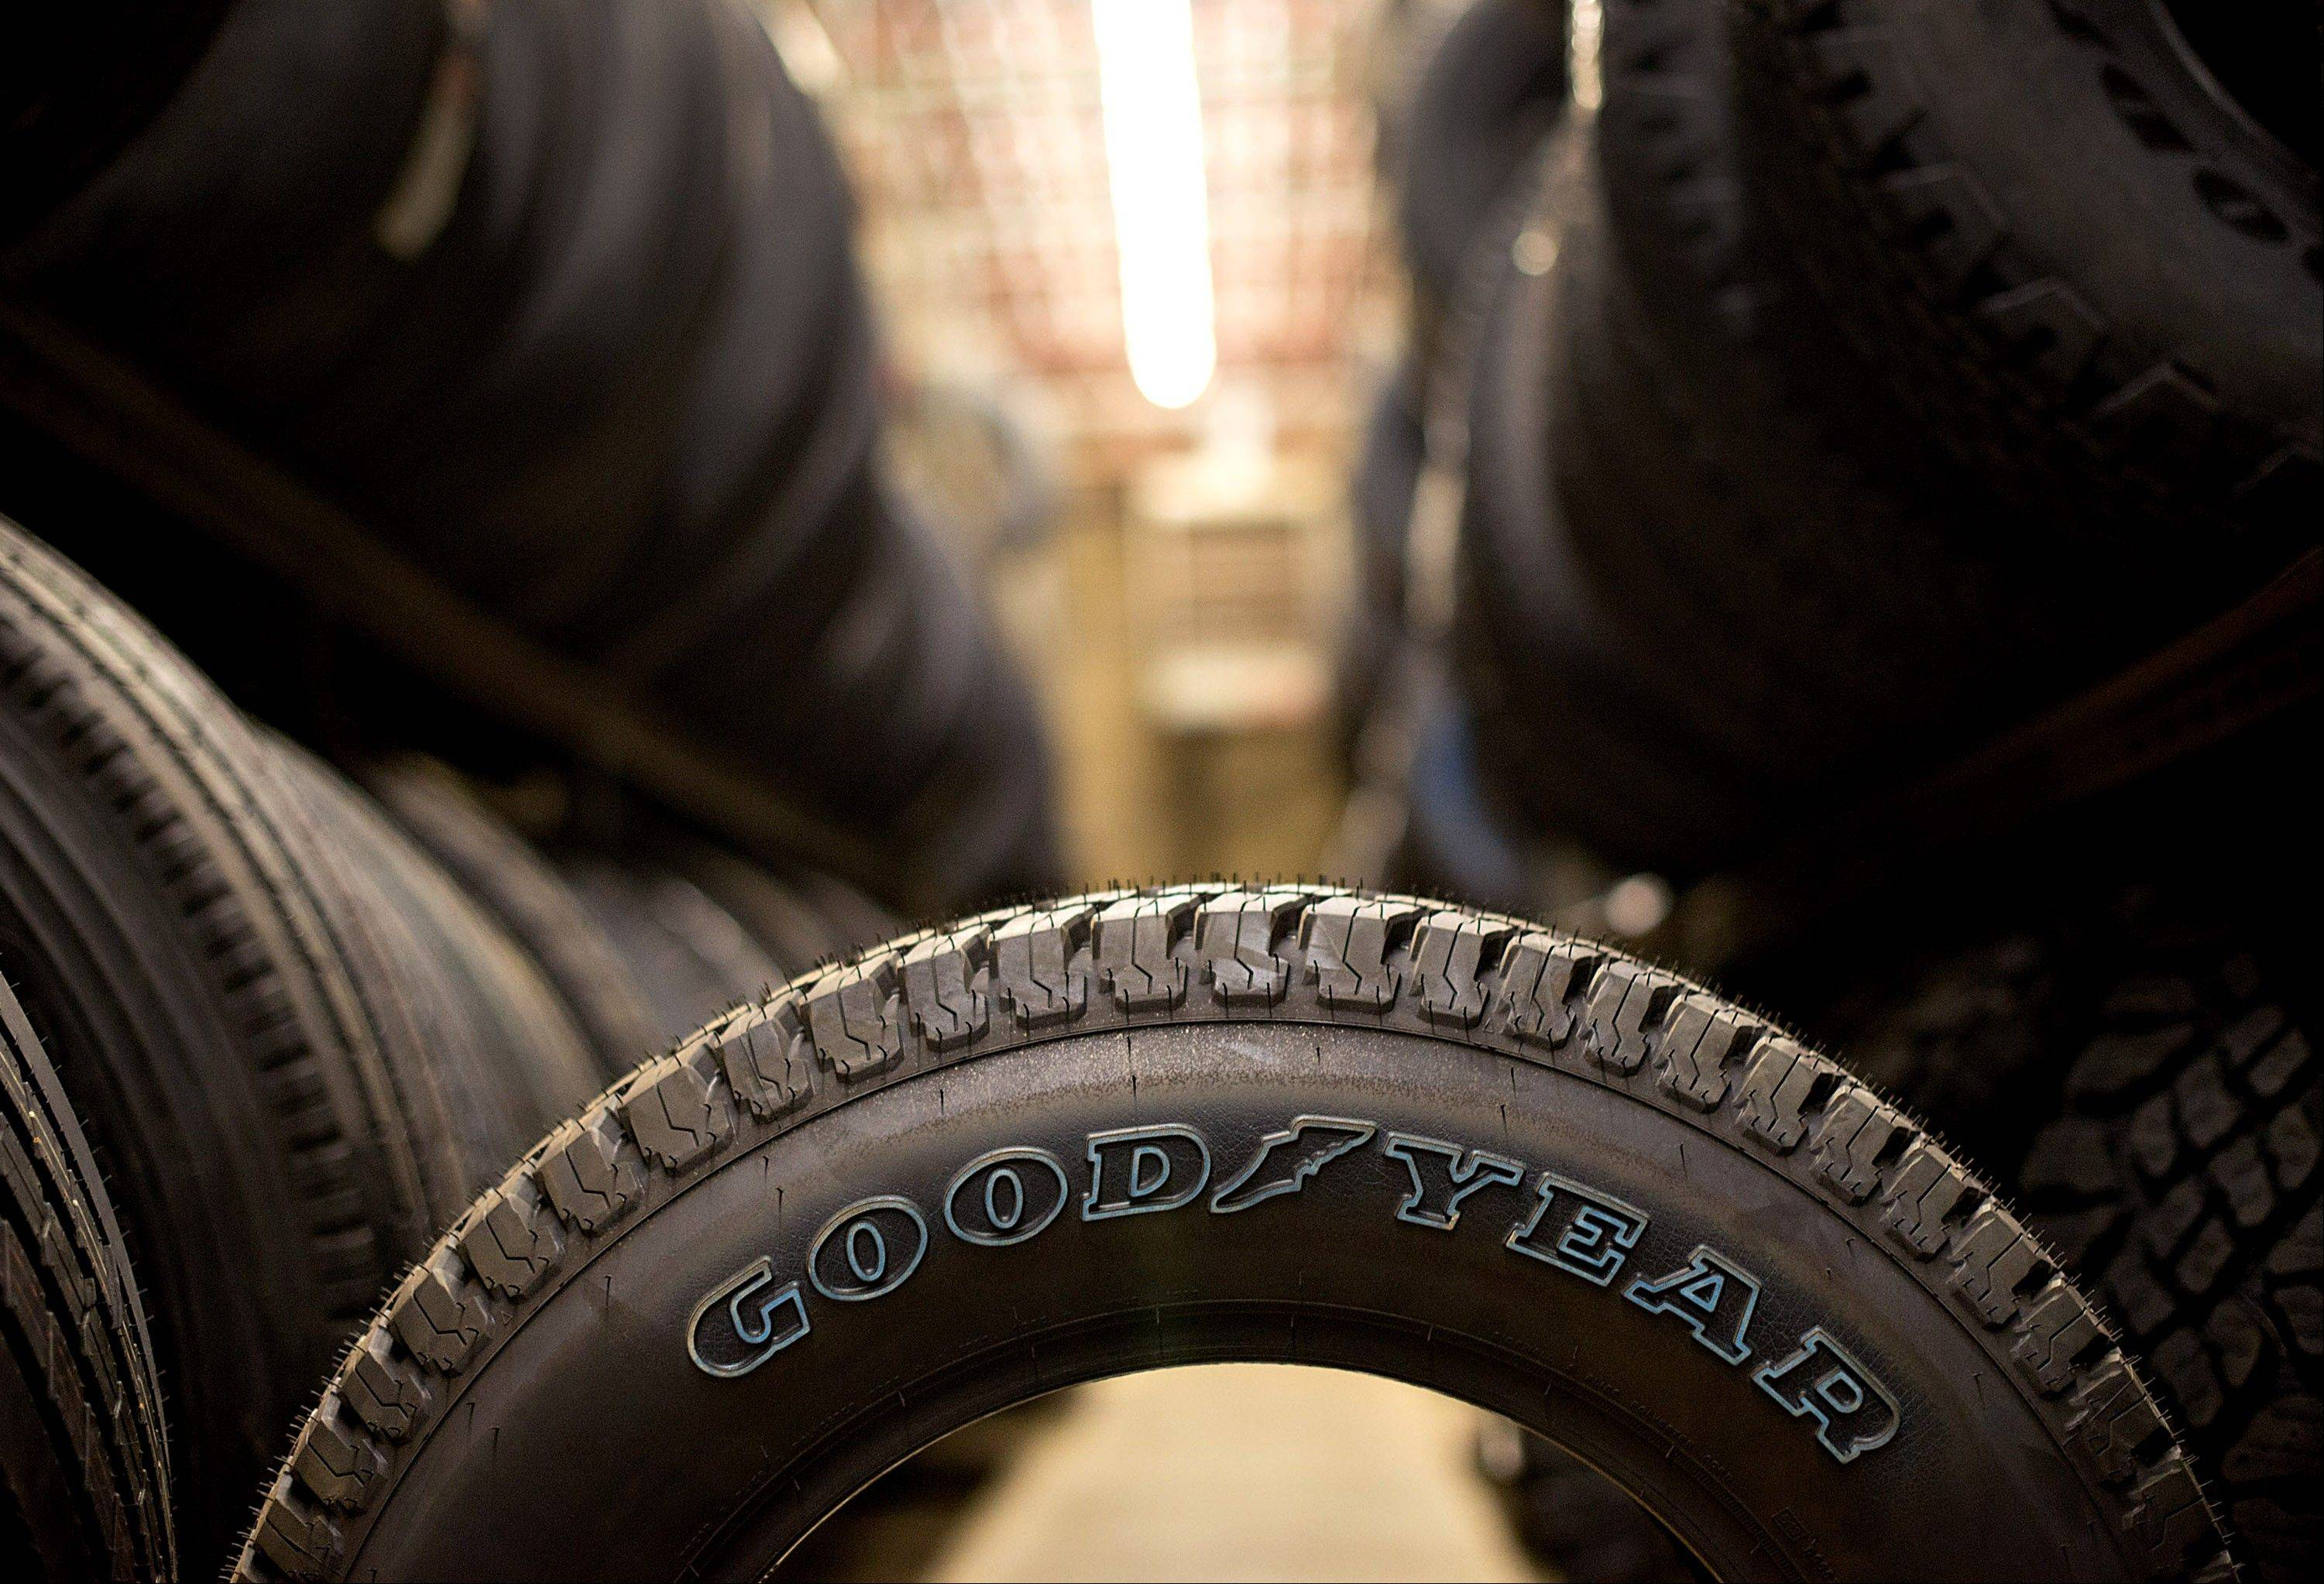 Goodyear Tire & Rubber Co. vehicle tires sit in a storage room at Keister's Tire Center in Kewanee, Ill. The company's stock fell 10 percent on Friday.